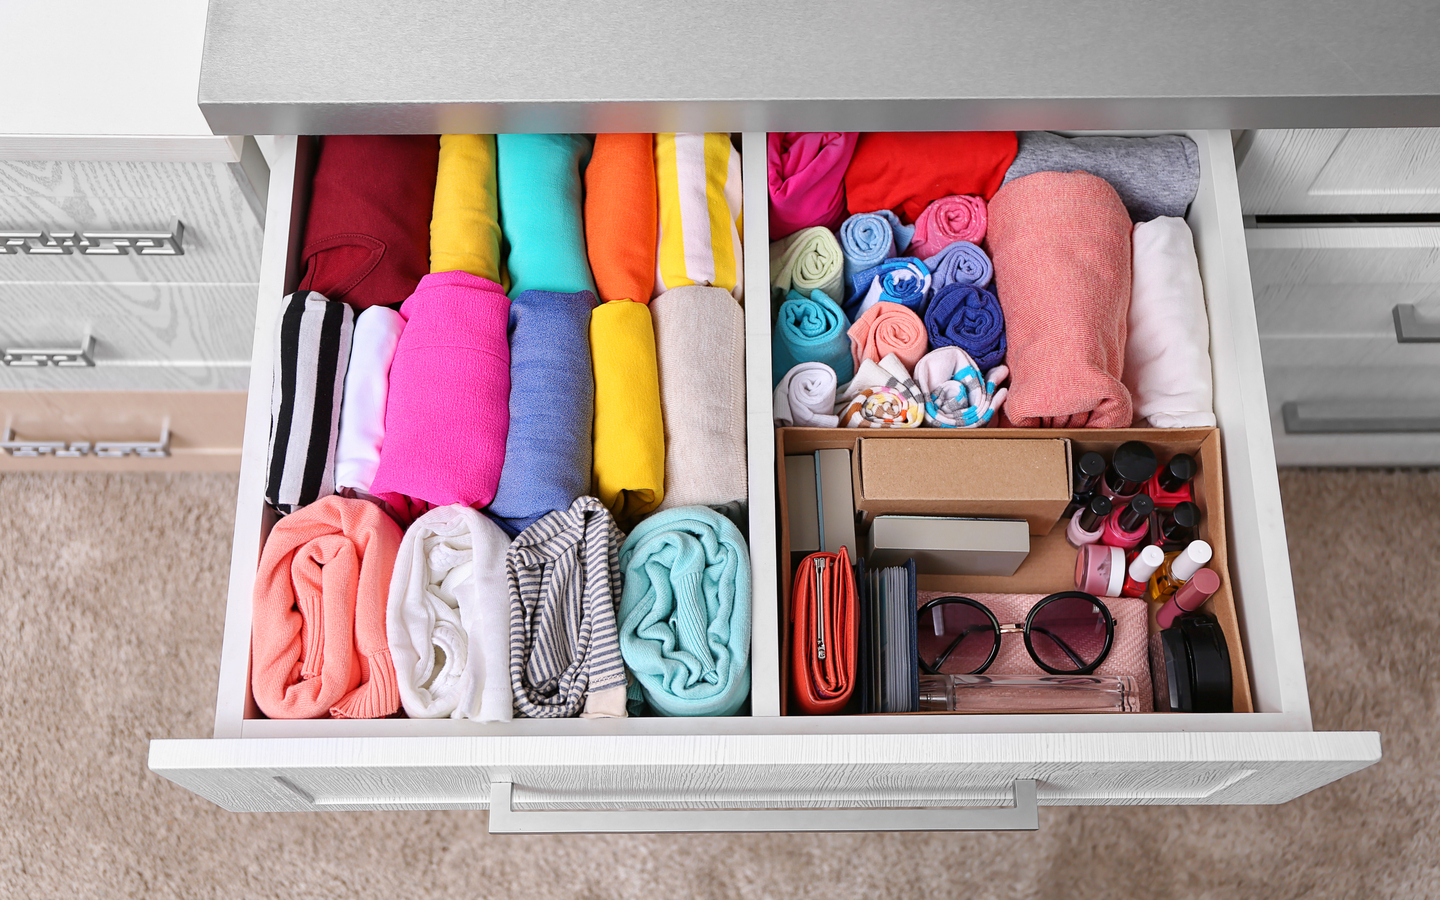 Keep folded shirts in drawer